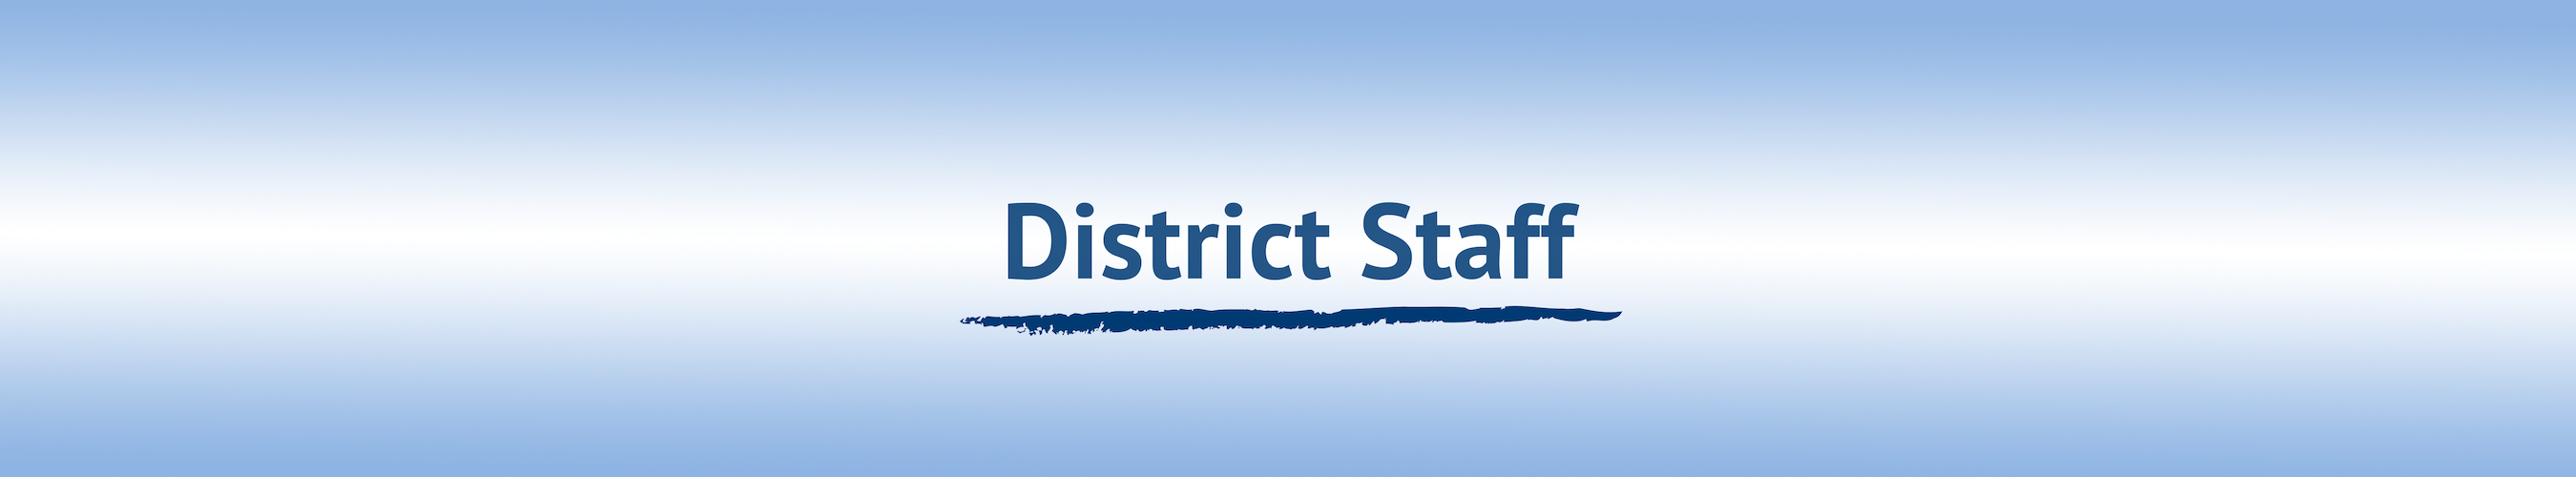 District Staff